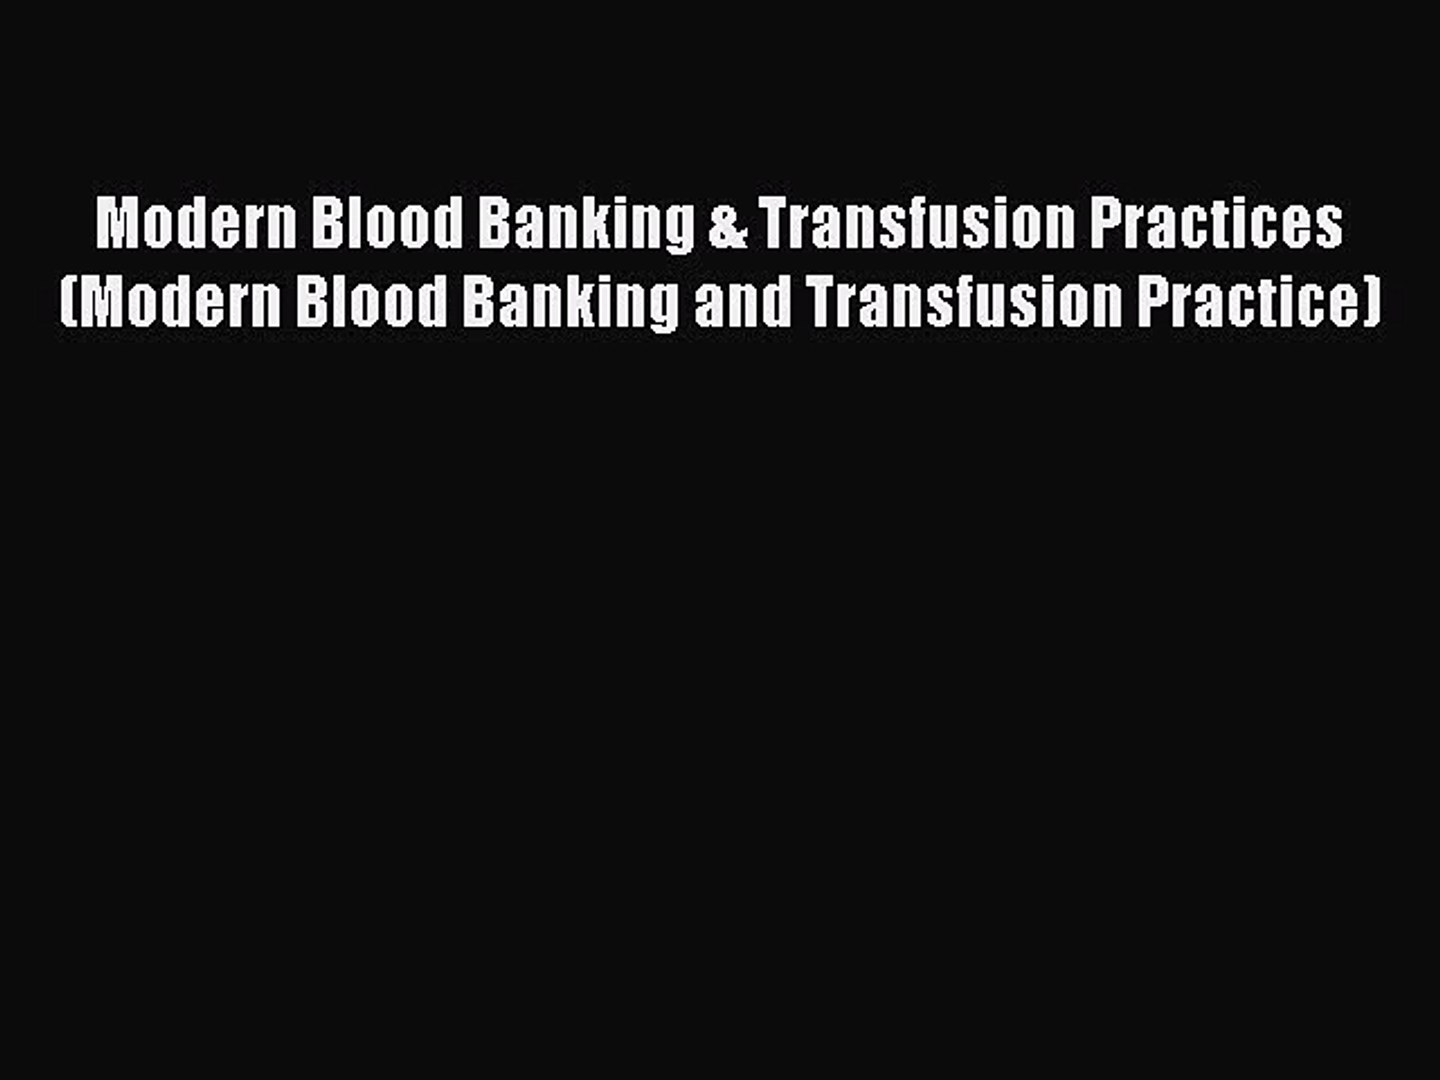 [PDF] Modern Blood Banking & Transfusion Practices (Modern Blood Banking and Transfusion Practic